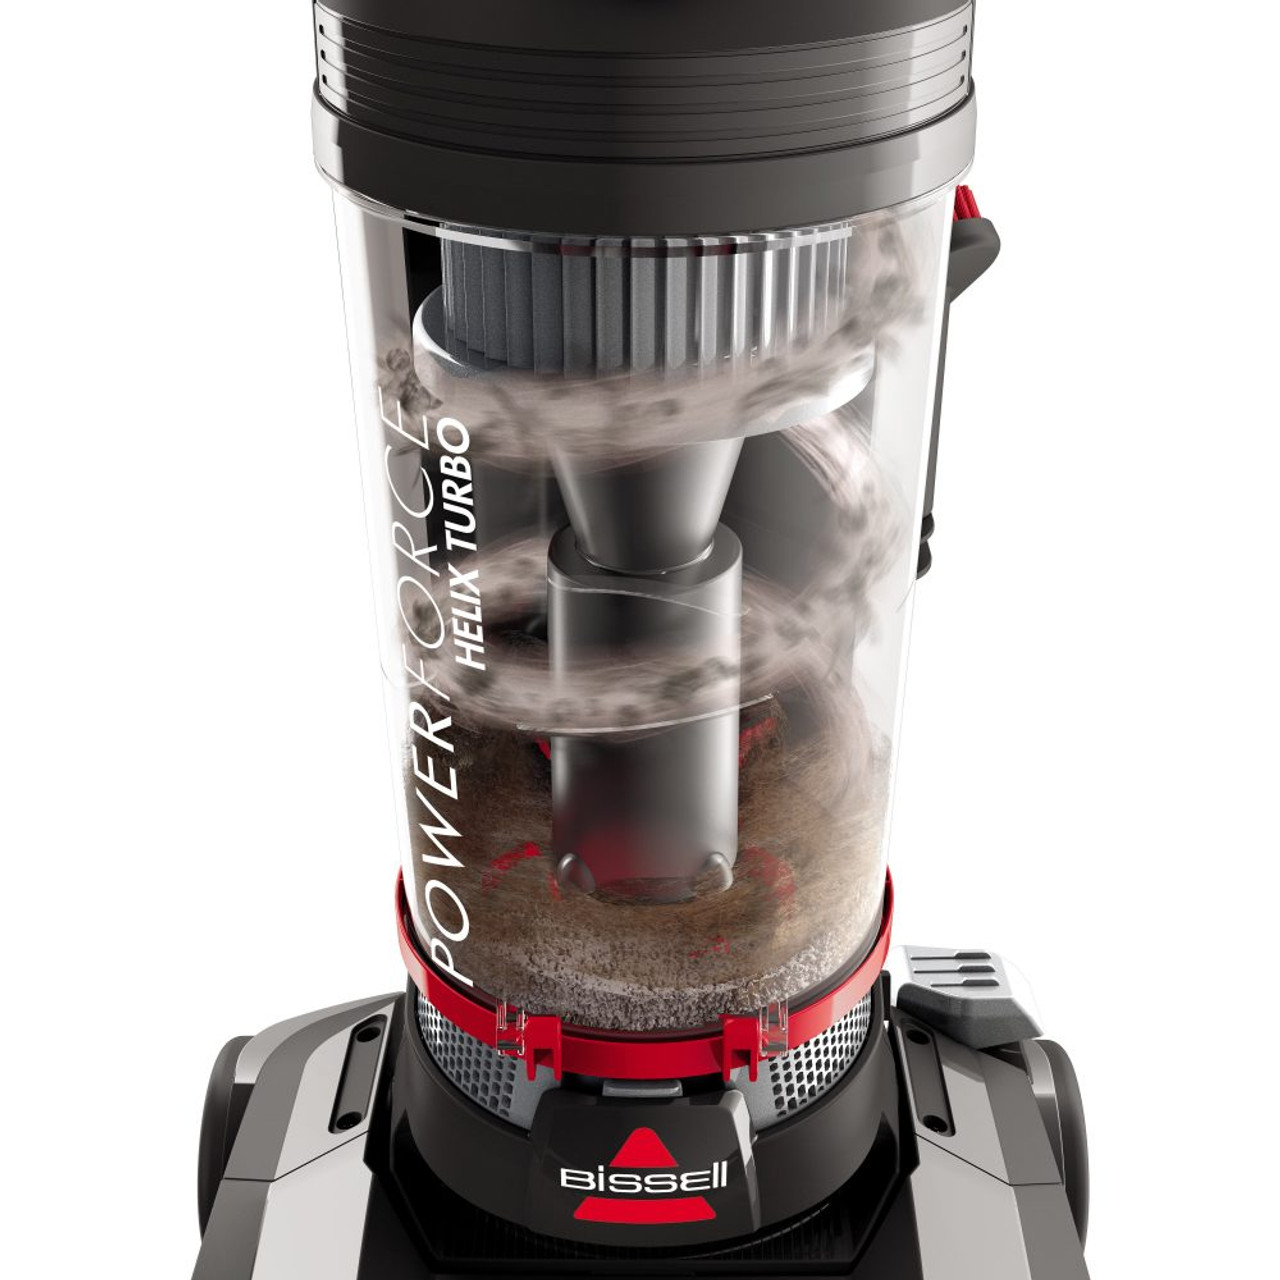 Bissell 2110F Powerforce™ Helix TURBO Upright Vacuum Cleaner